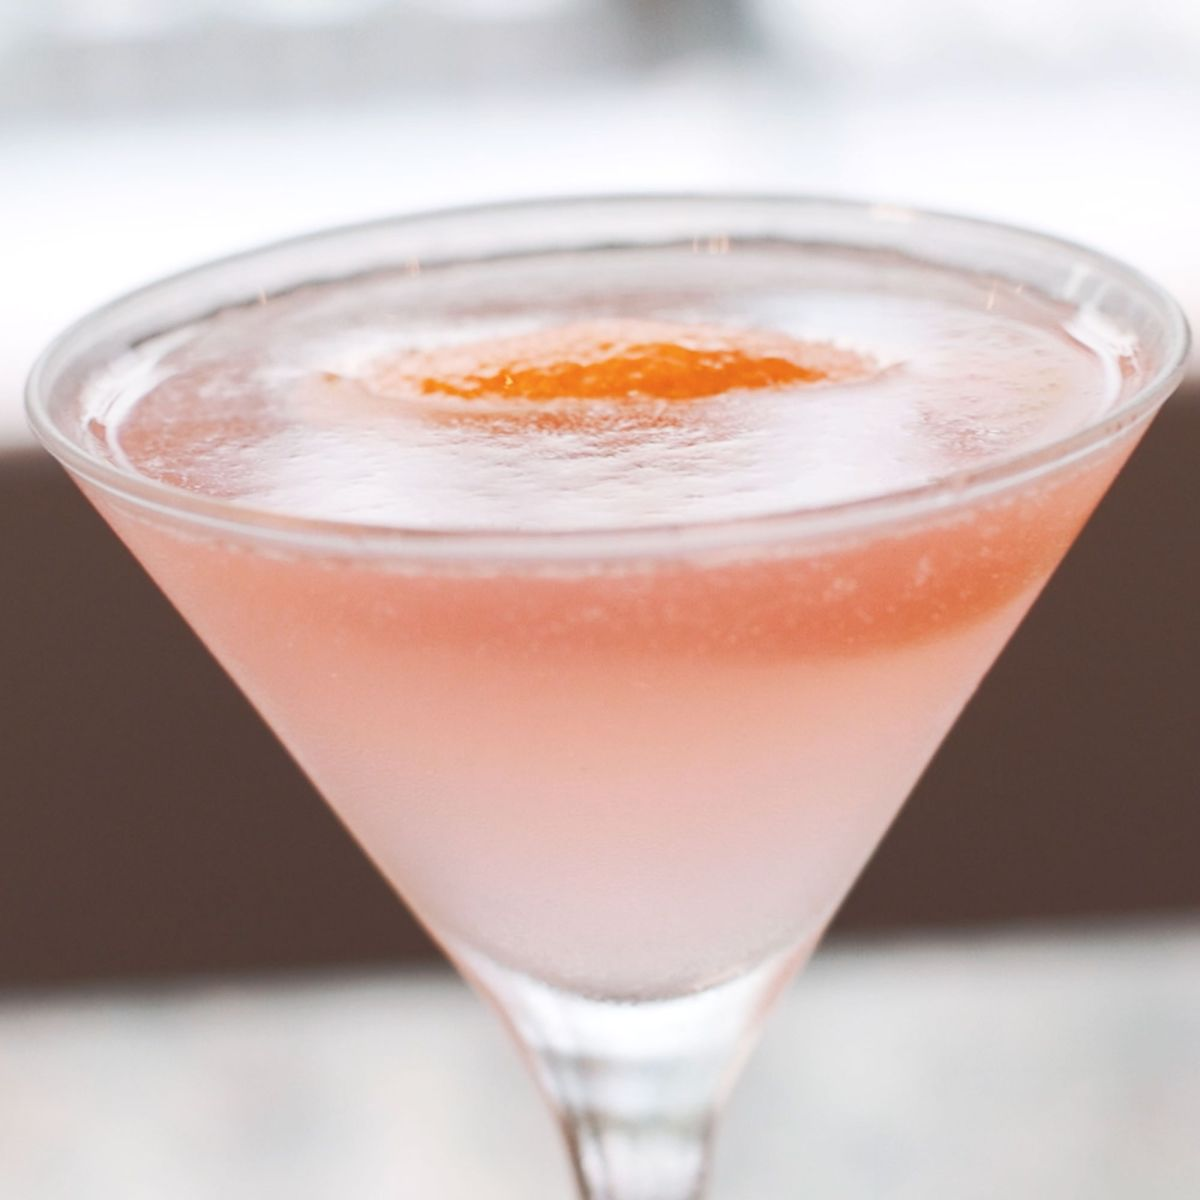 Find out how to make a perfect cosmopolitan cocktail with our easy recipe